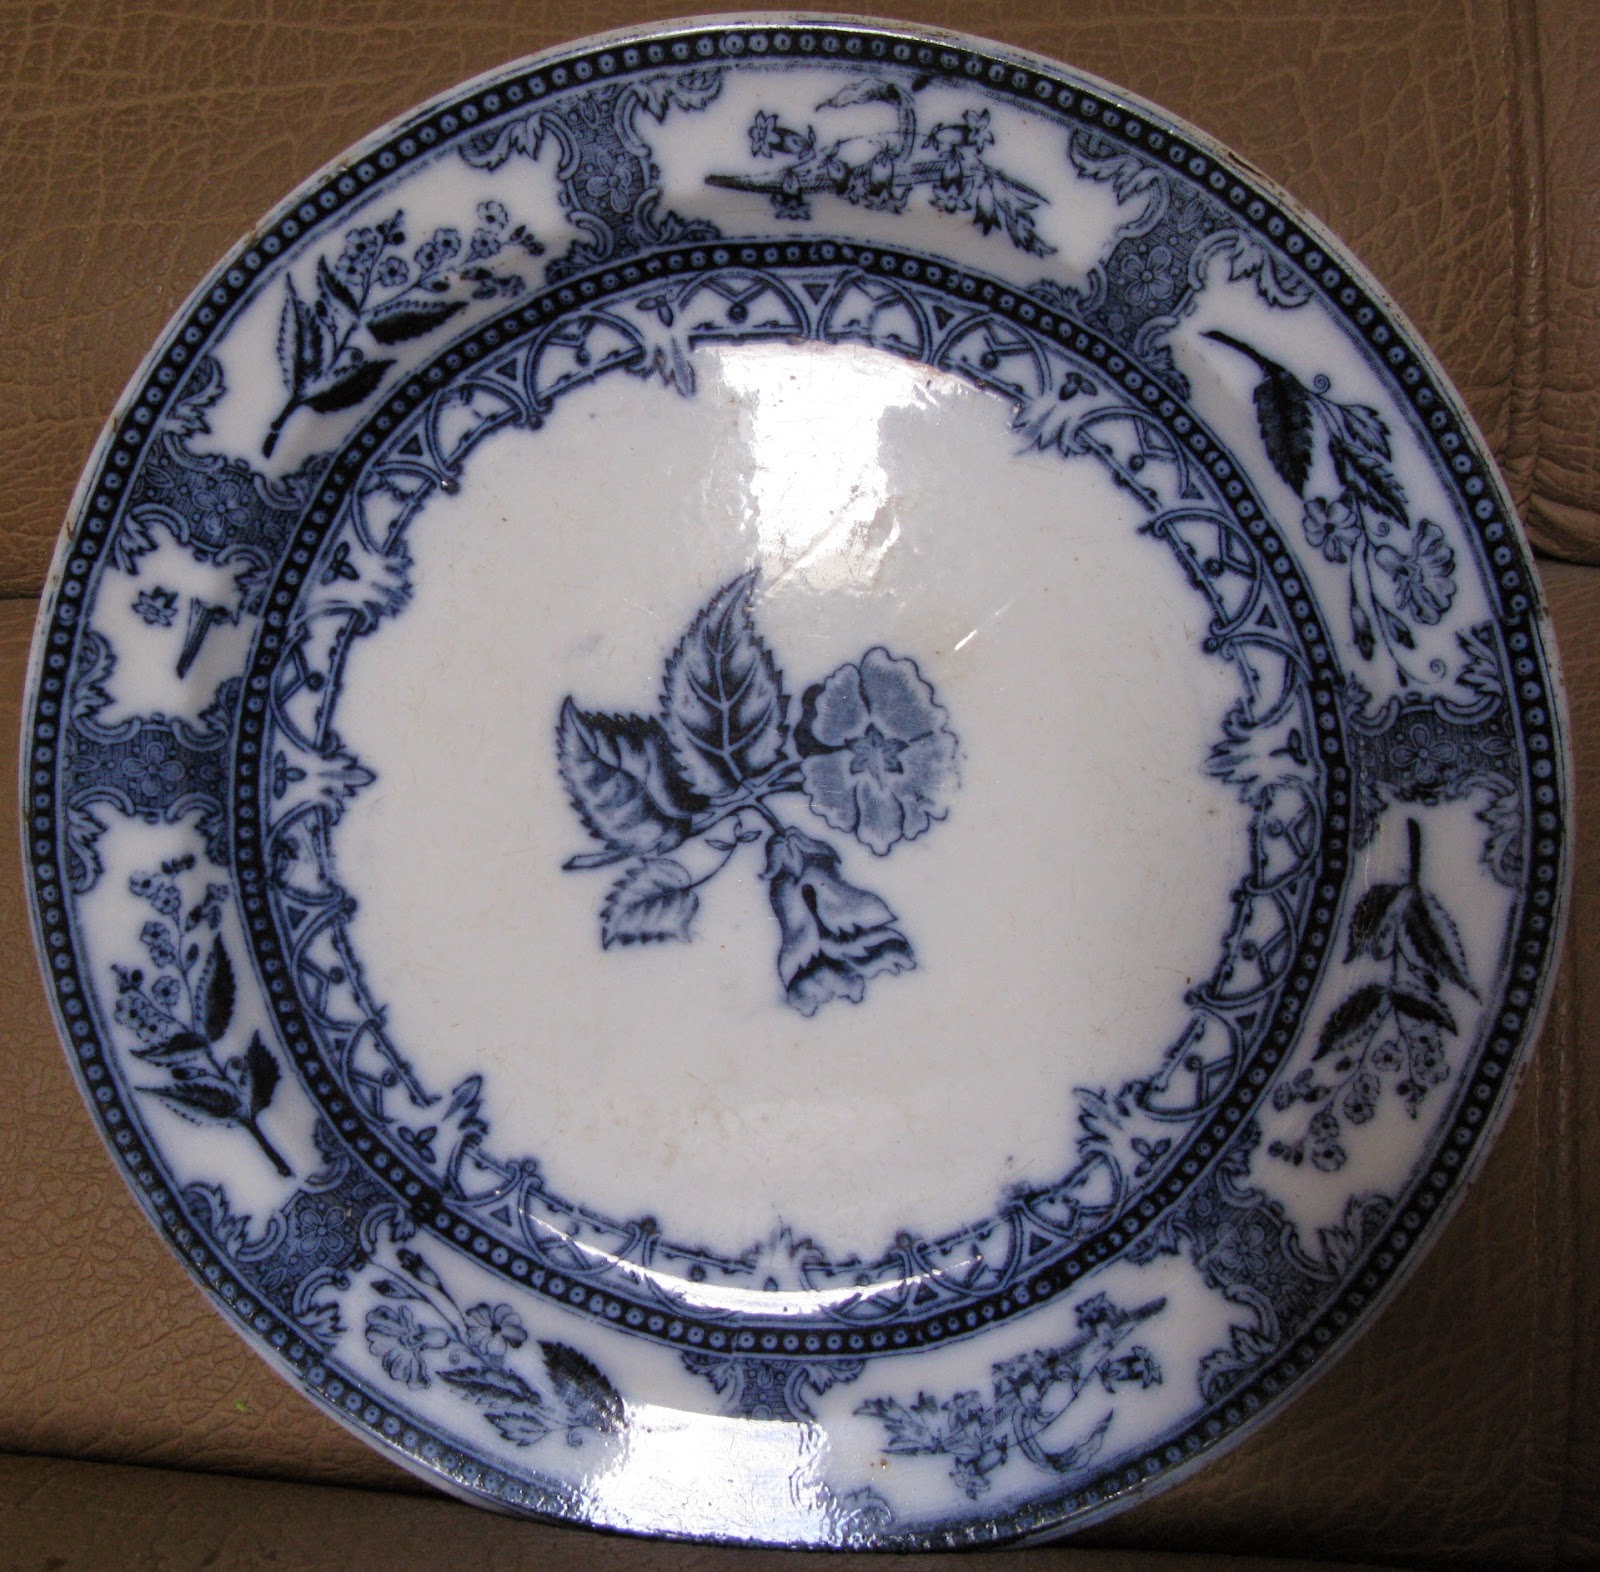 Antique Russian Imperial pottery & ZOORPUKHTOON : Antique Russian Imperial pottery